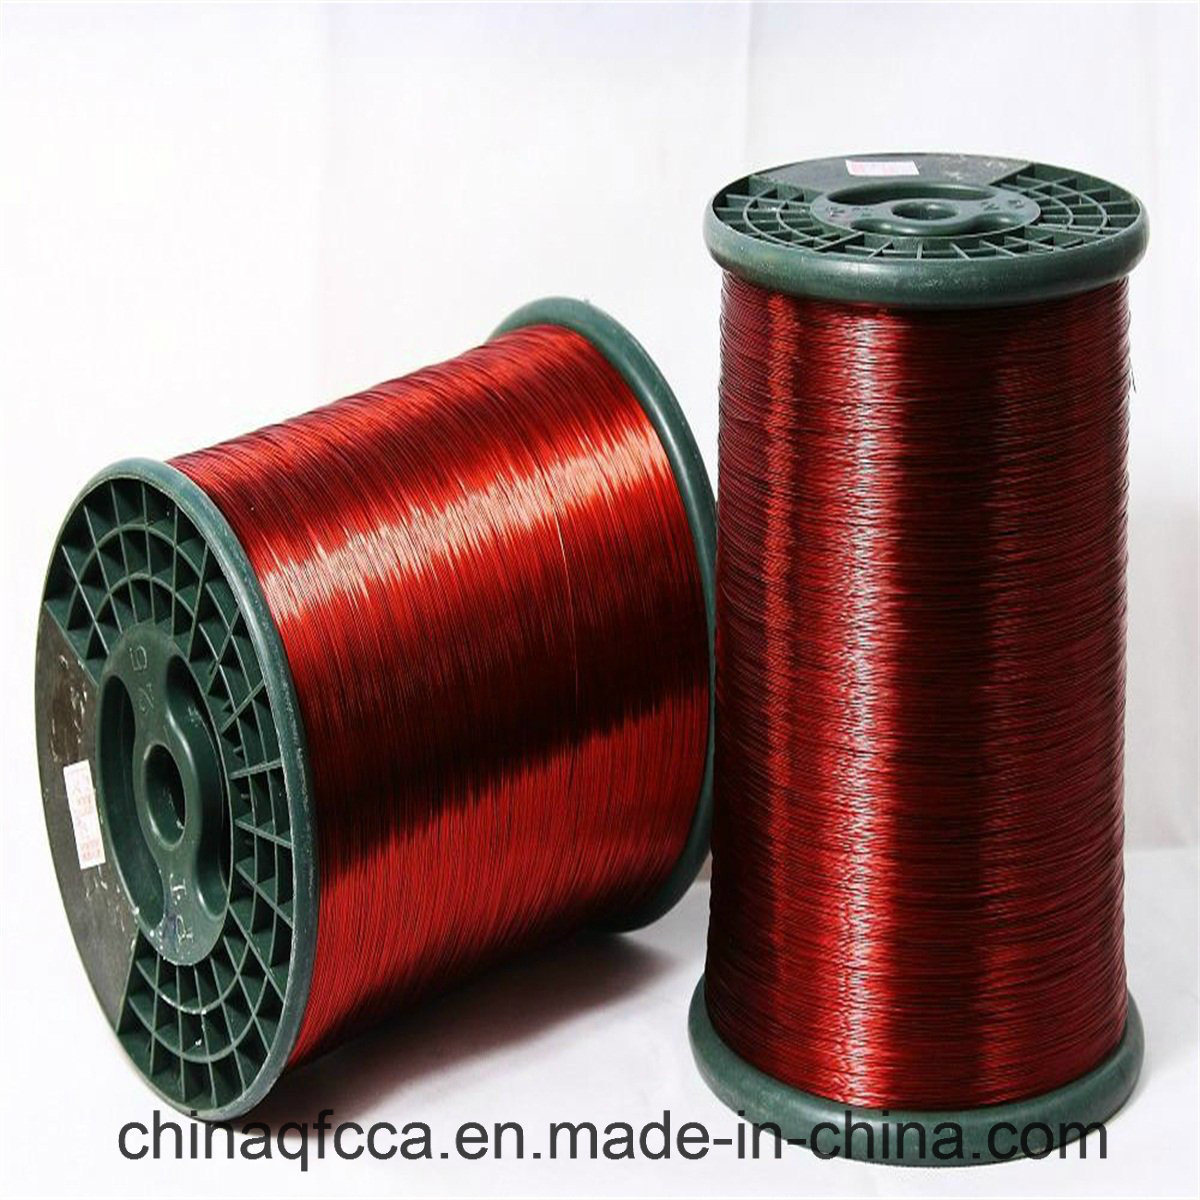 Enameled CCA Electric Wire for Sale